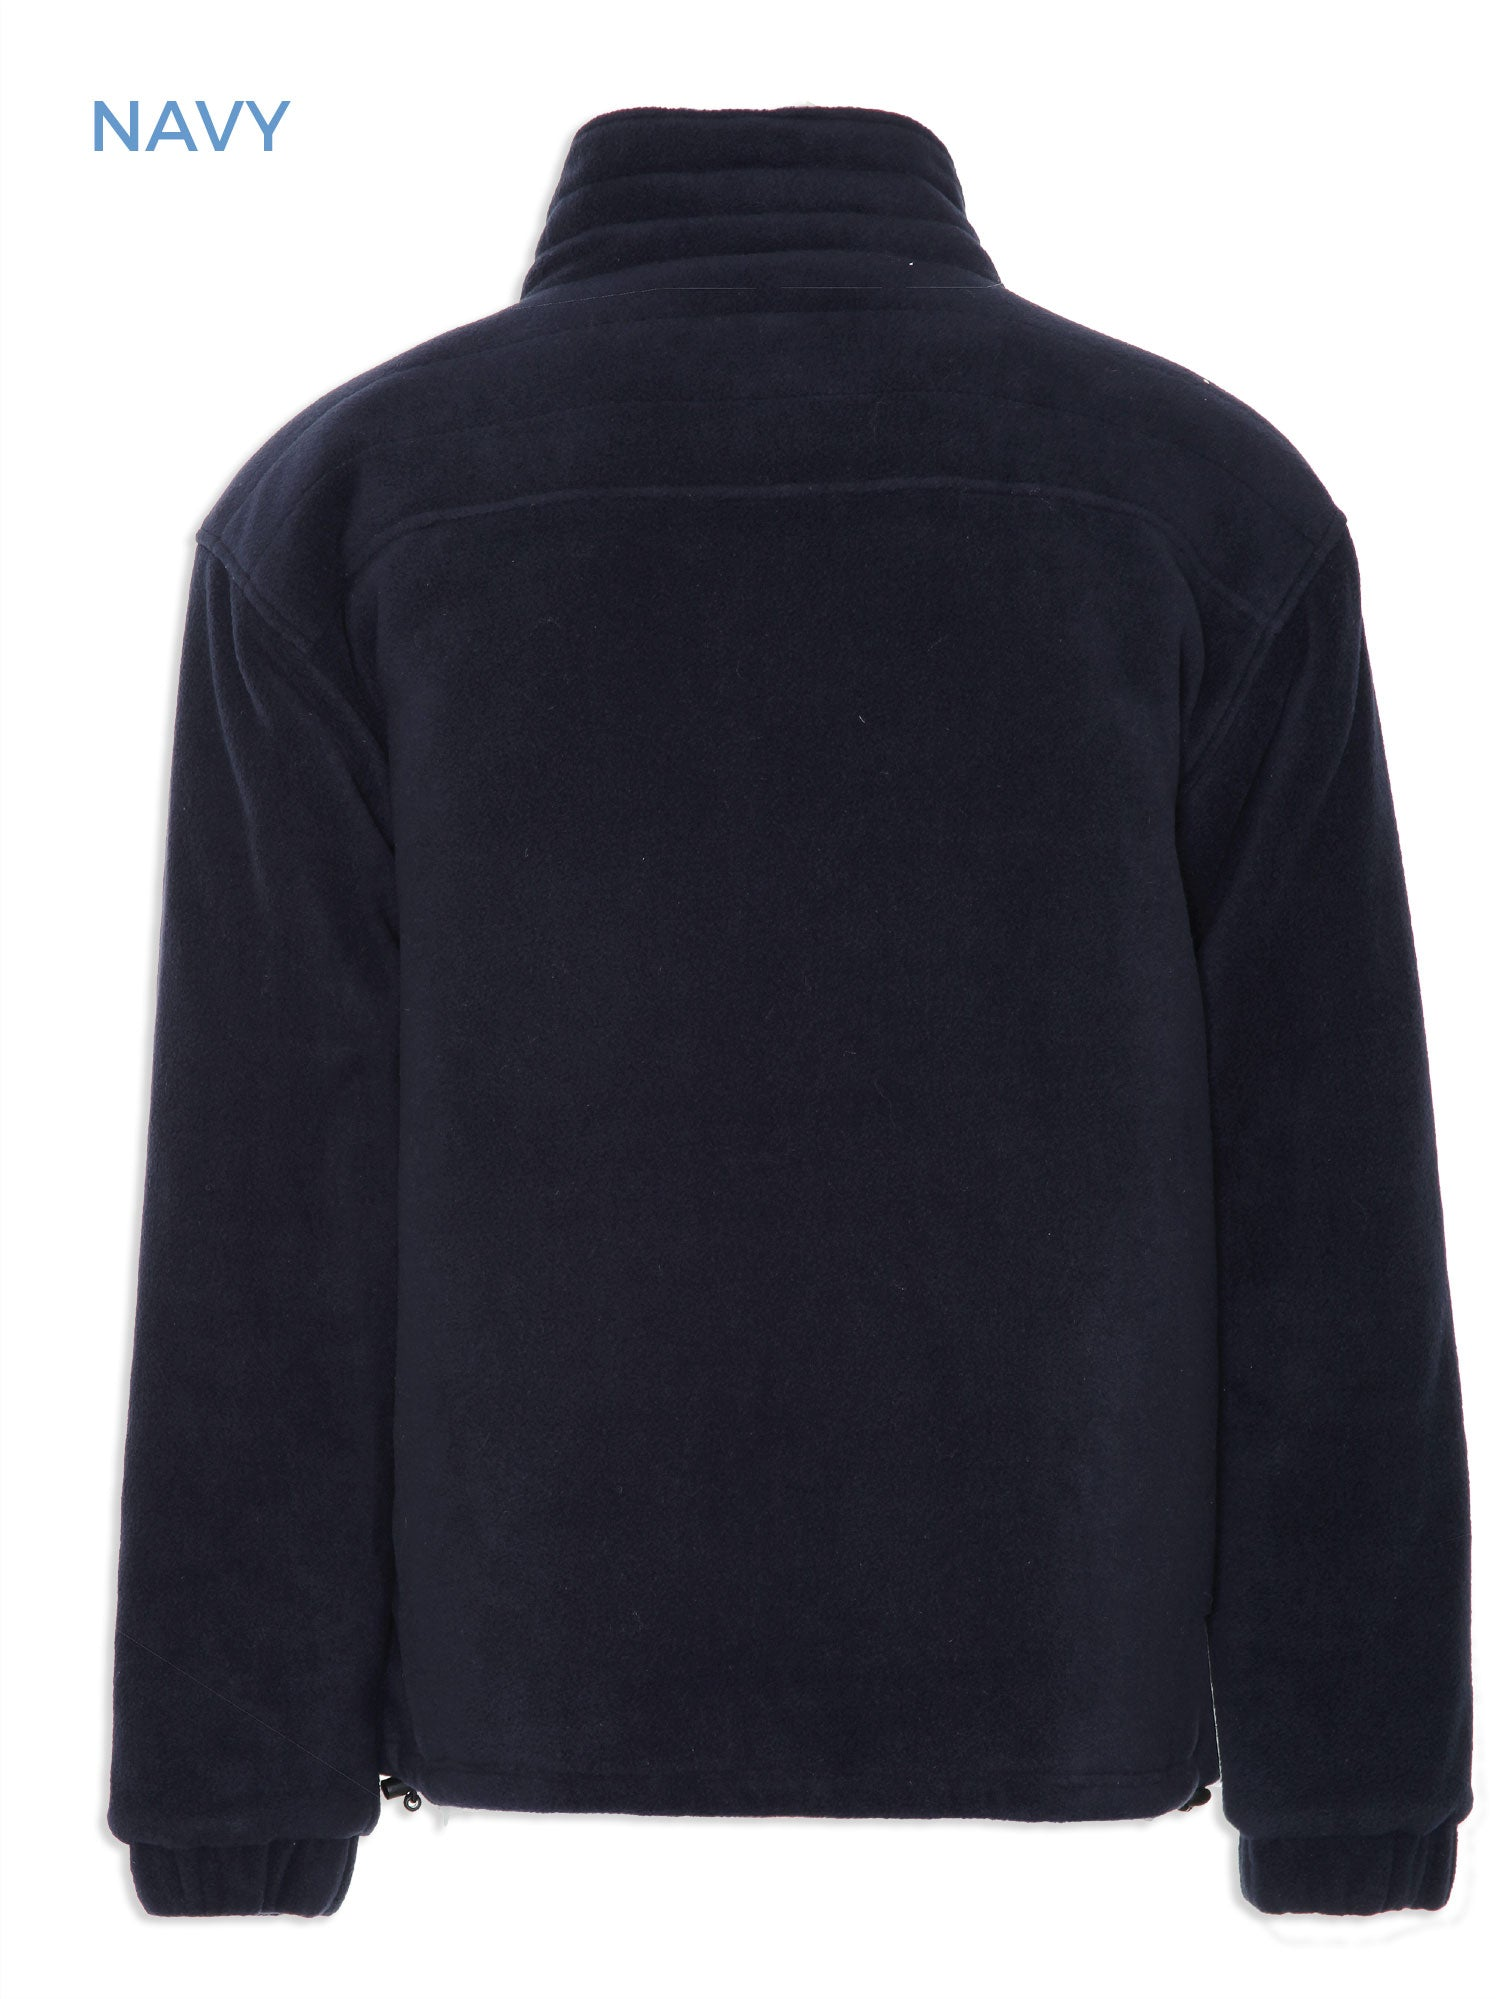 Back view Glen Lined Fleece Jacket from Champion in navy